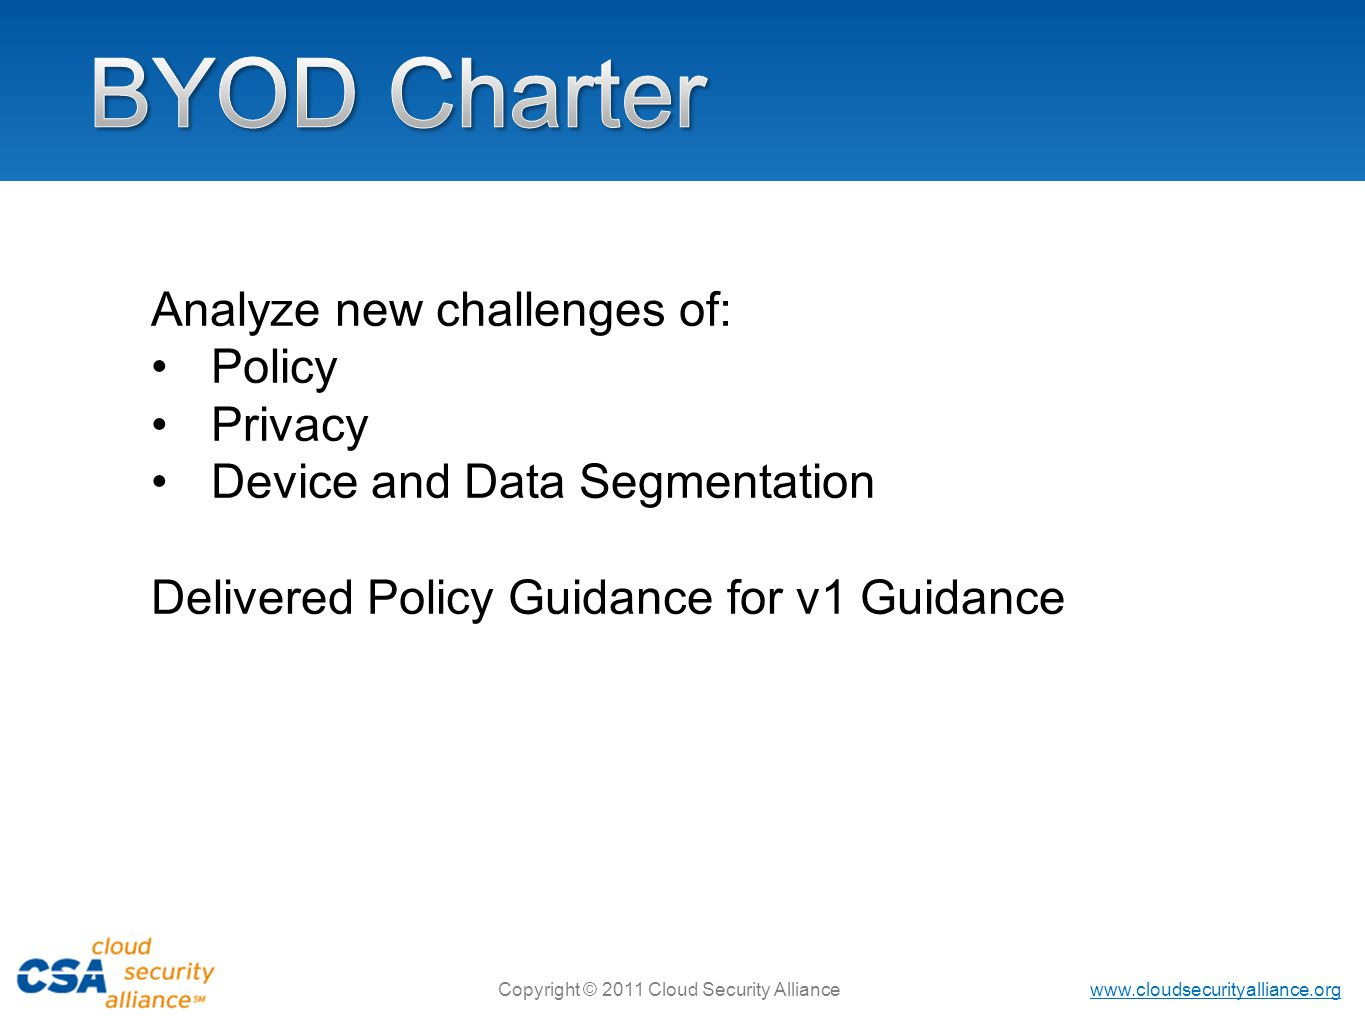 BYOD Charter Analyze new challenges of: Policy Privacy